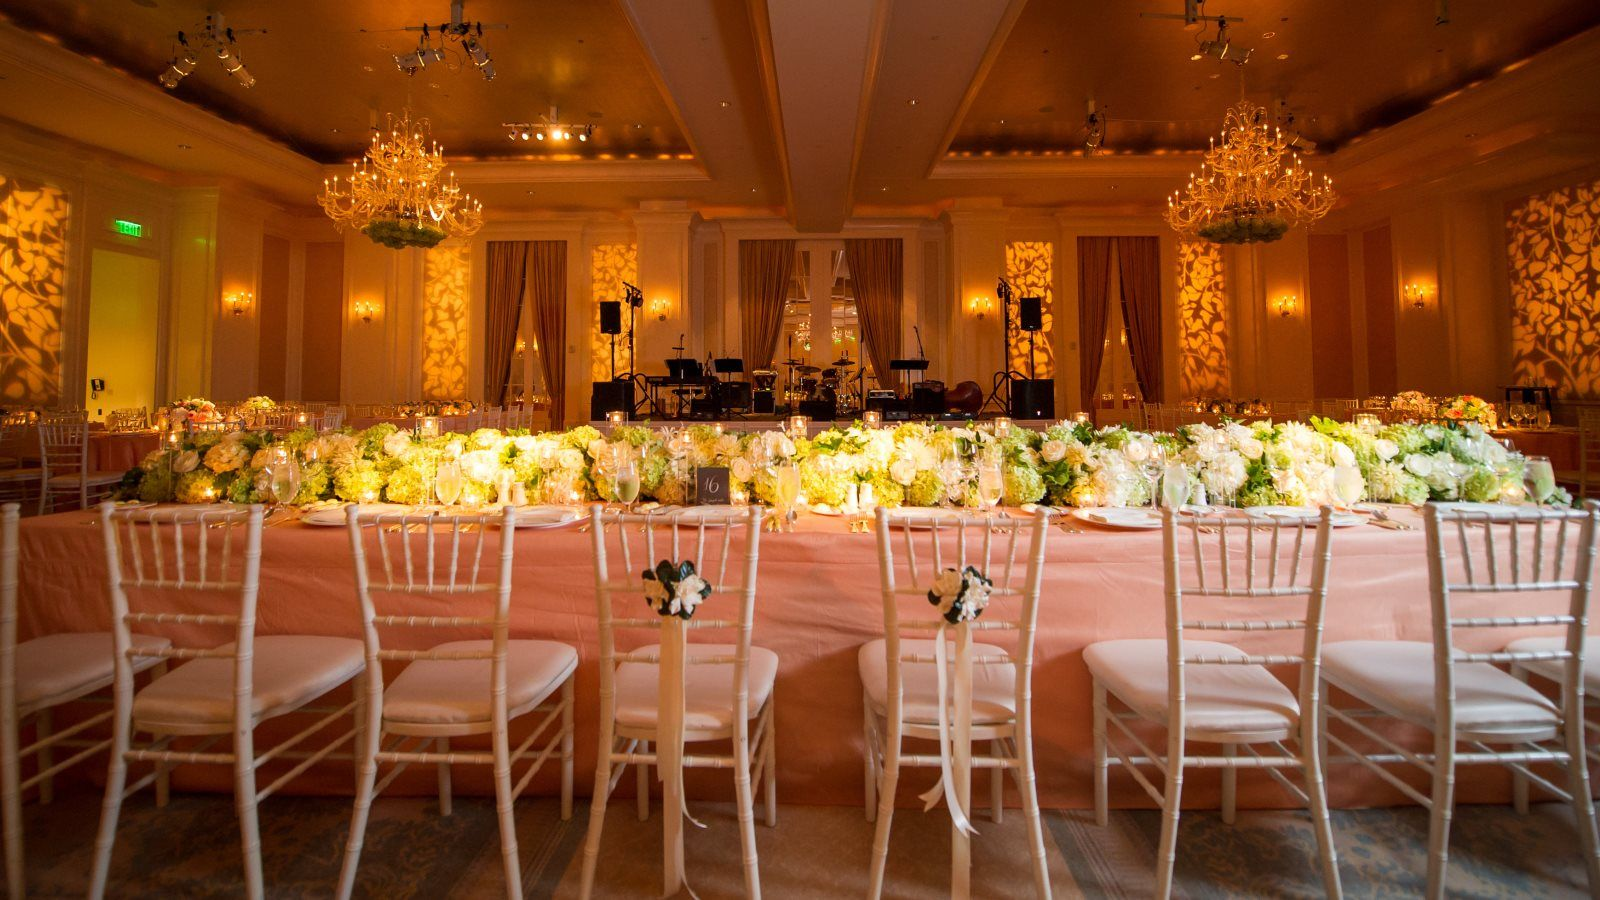 Atlanta Wedding Venues - The St. Regis Atlanta